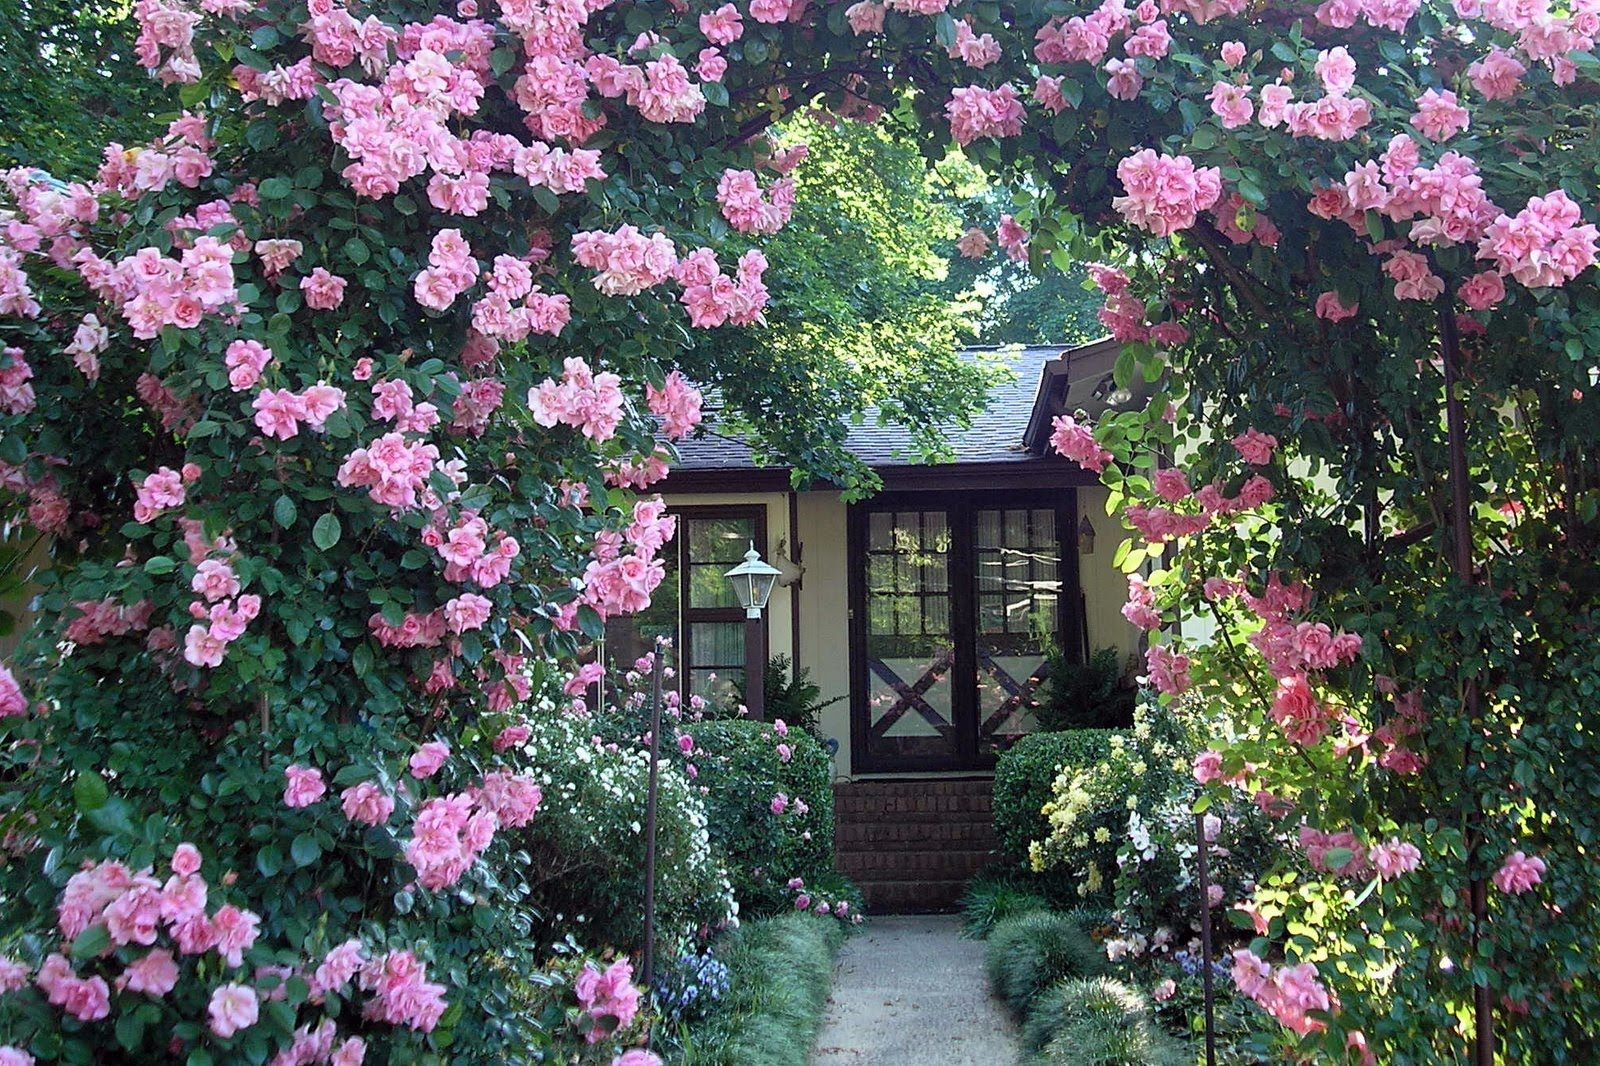 I come to the garden alone acapella growing in him pinterest